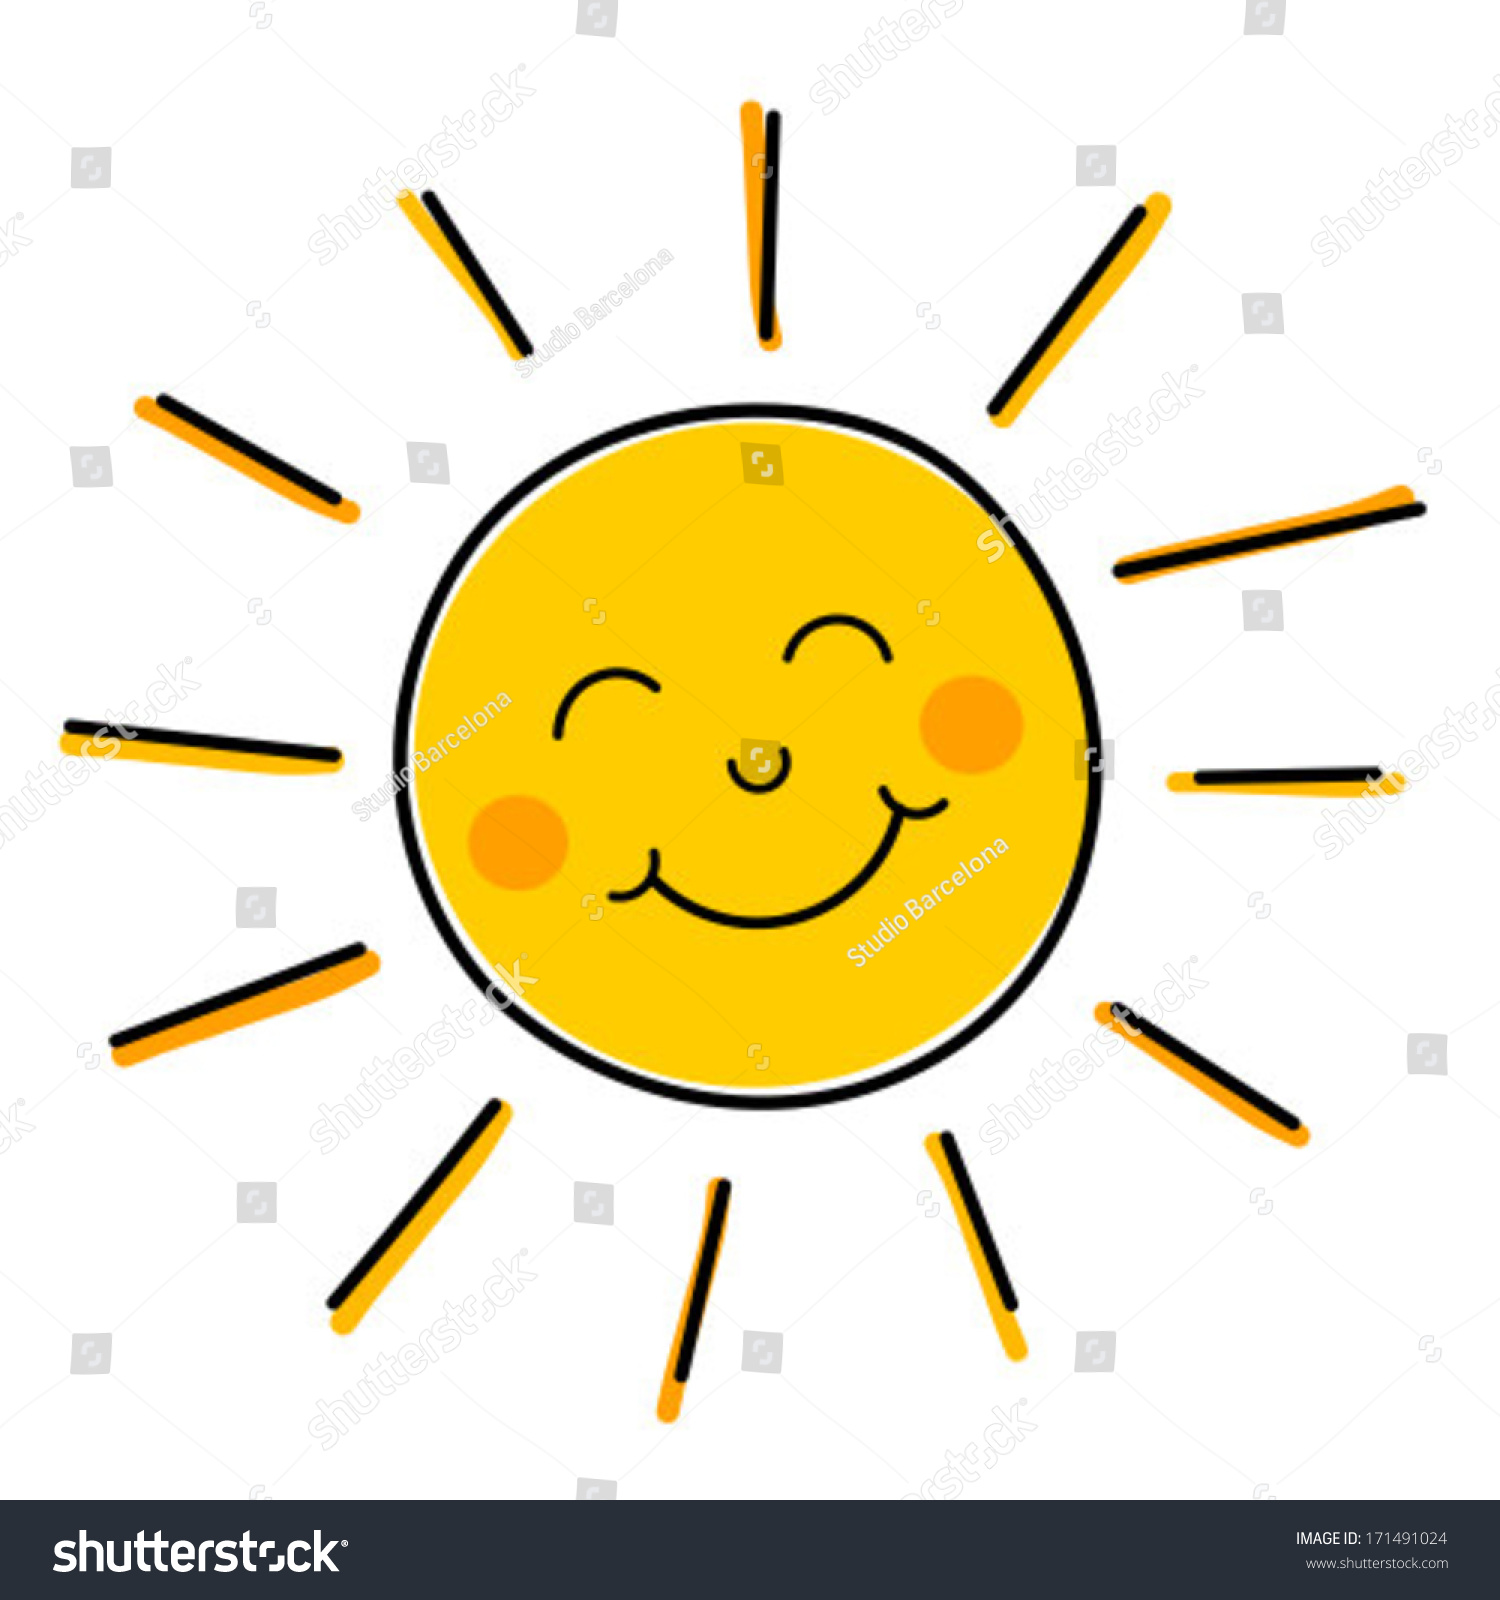 Smiling sun images - Drawing Of Happy Smiling Sun Vector Illustration